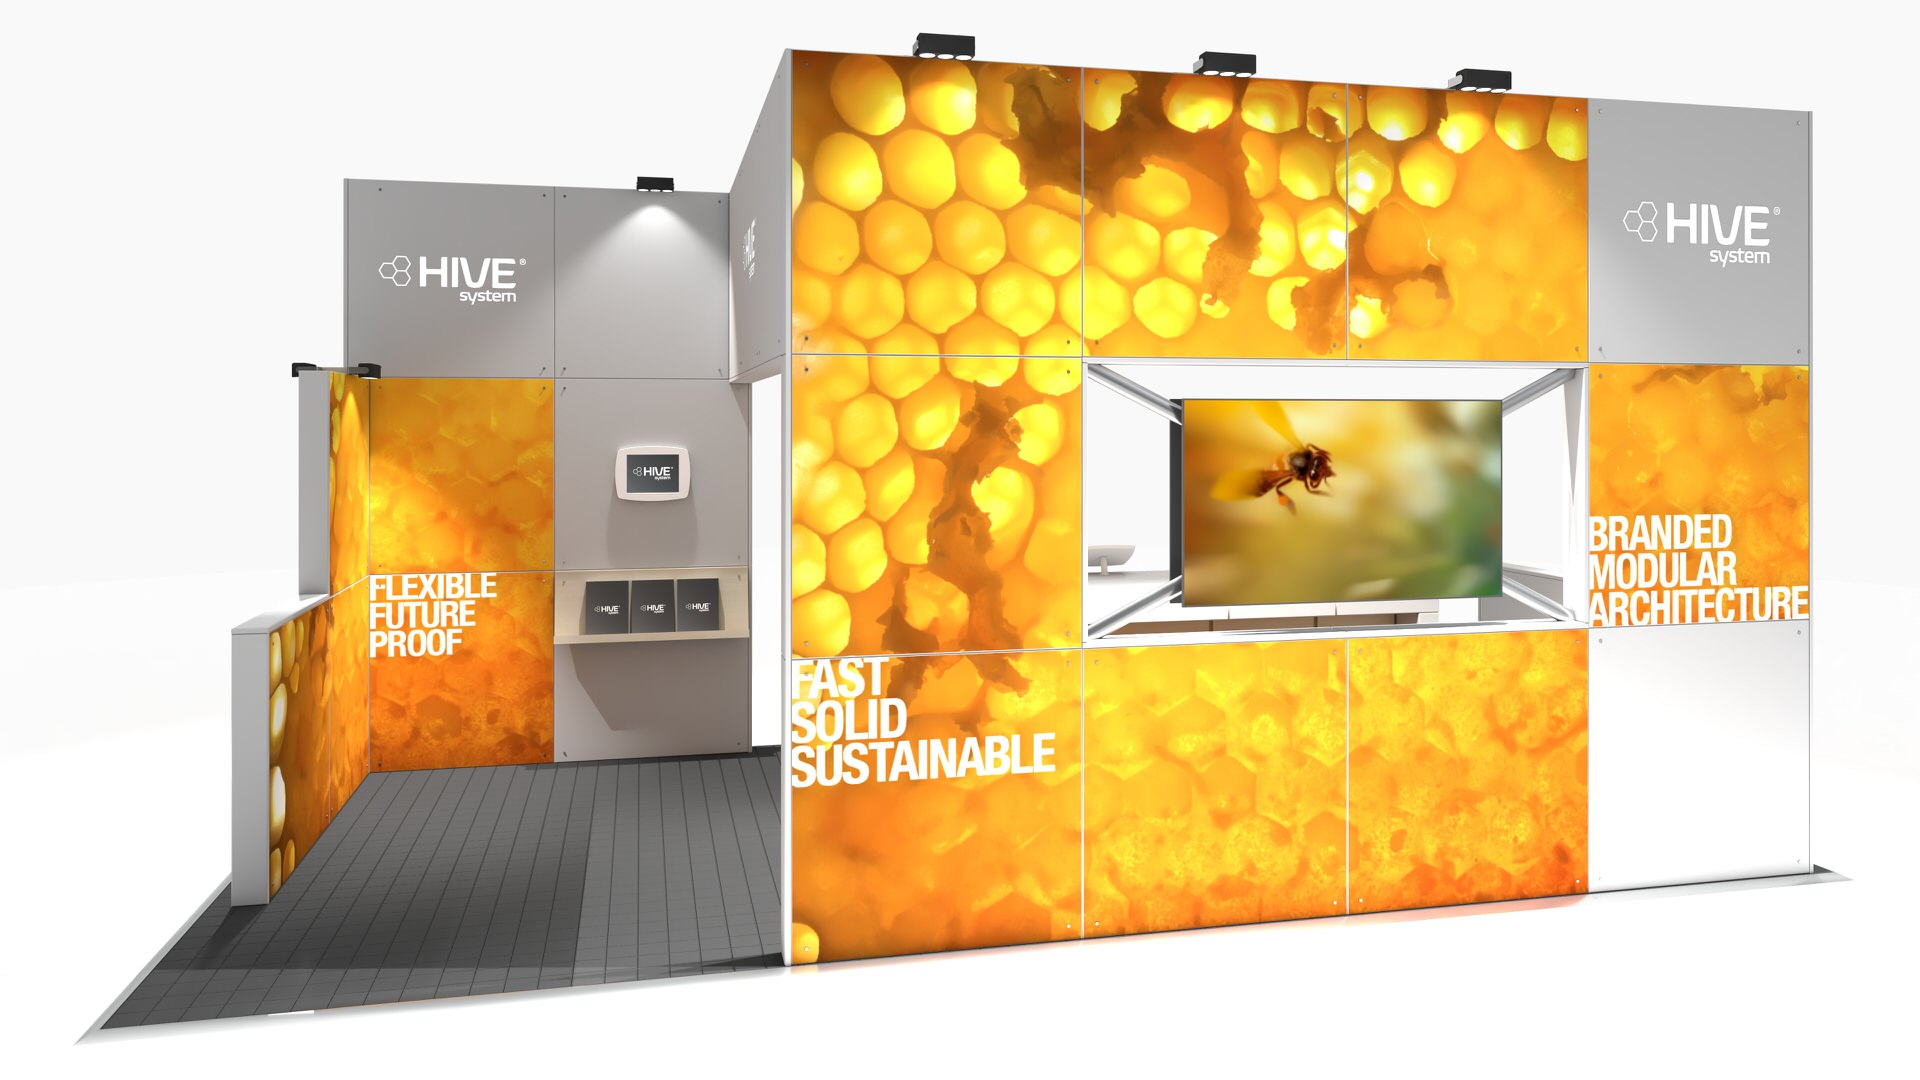 HIVE_Sustainable_Exhibition_System_03.jpeg